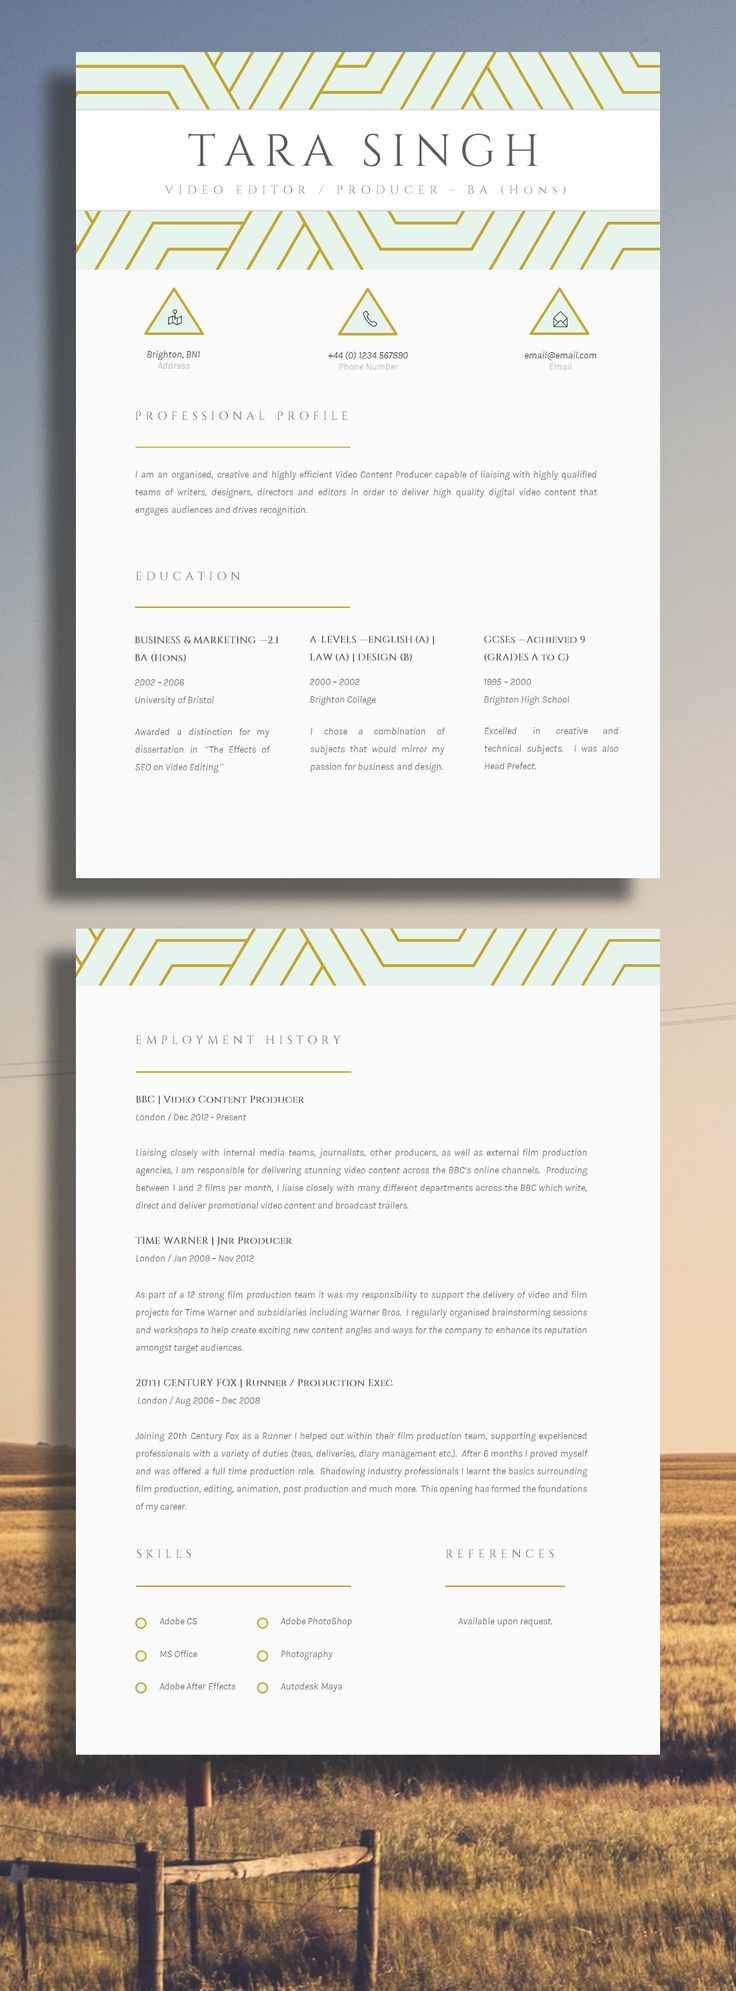 an elegant and creative cv design gives a professional approach to any job application wow - Free Unique Resume Templates